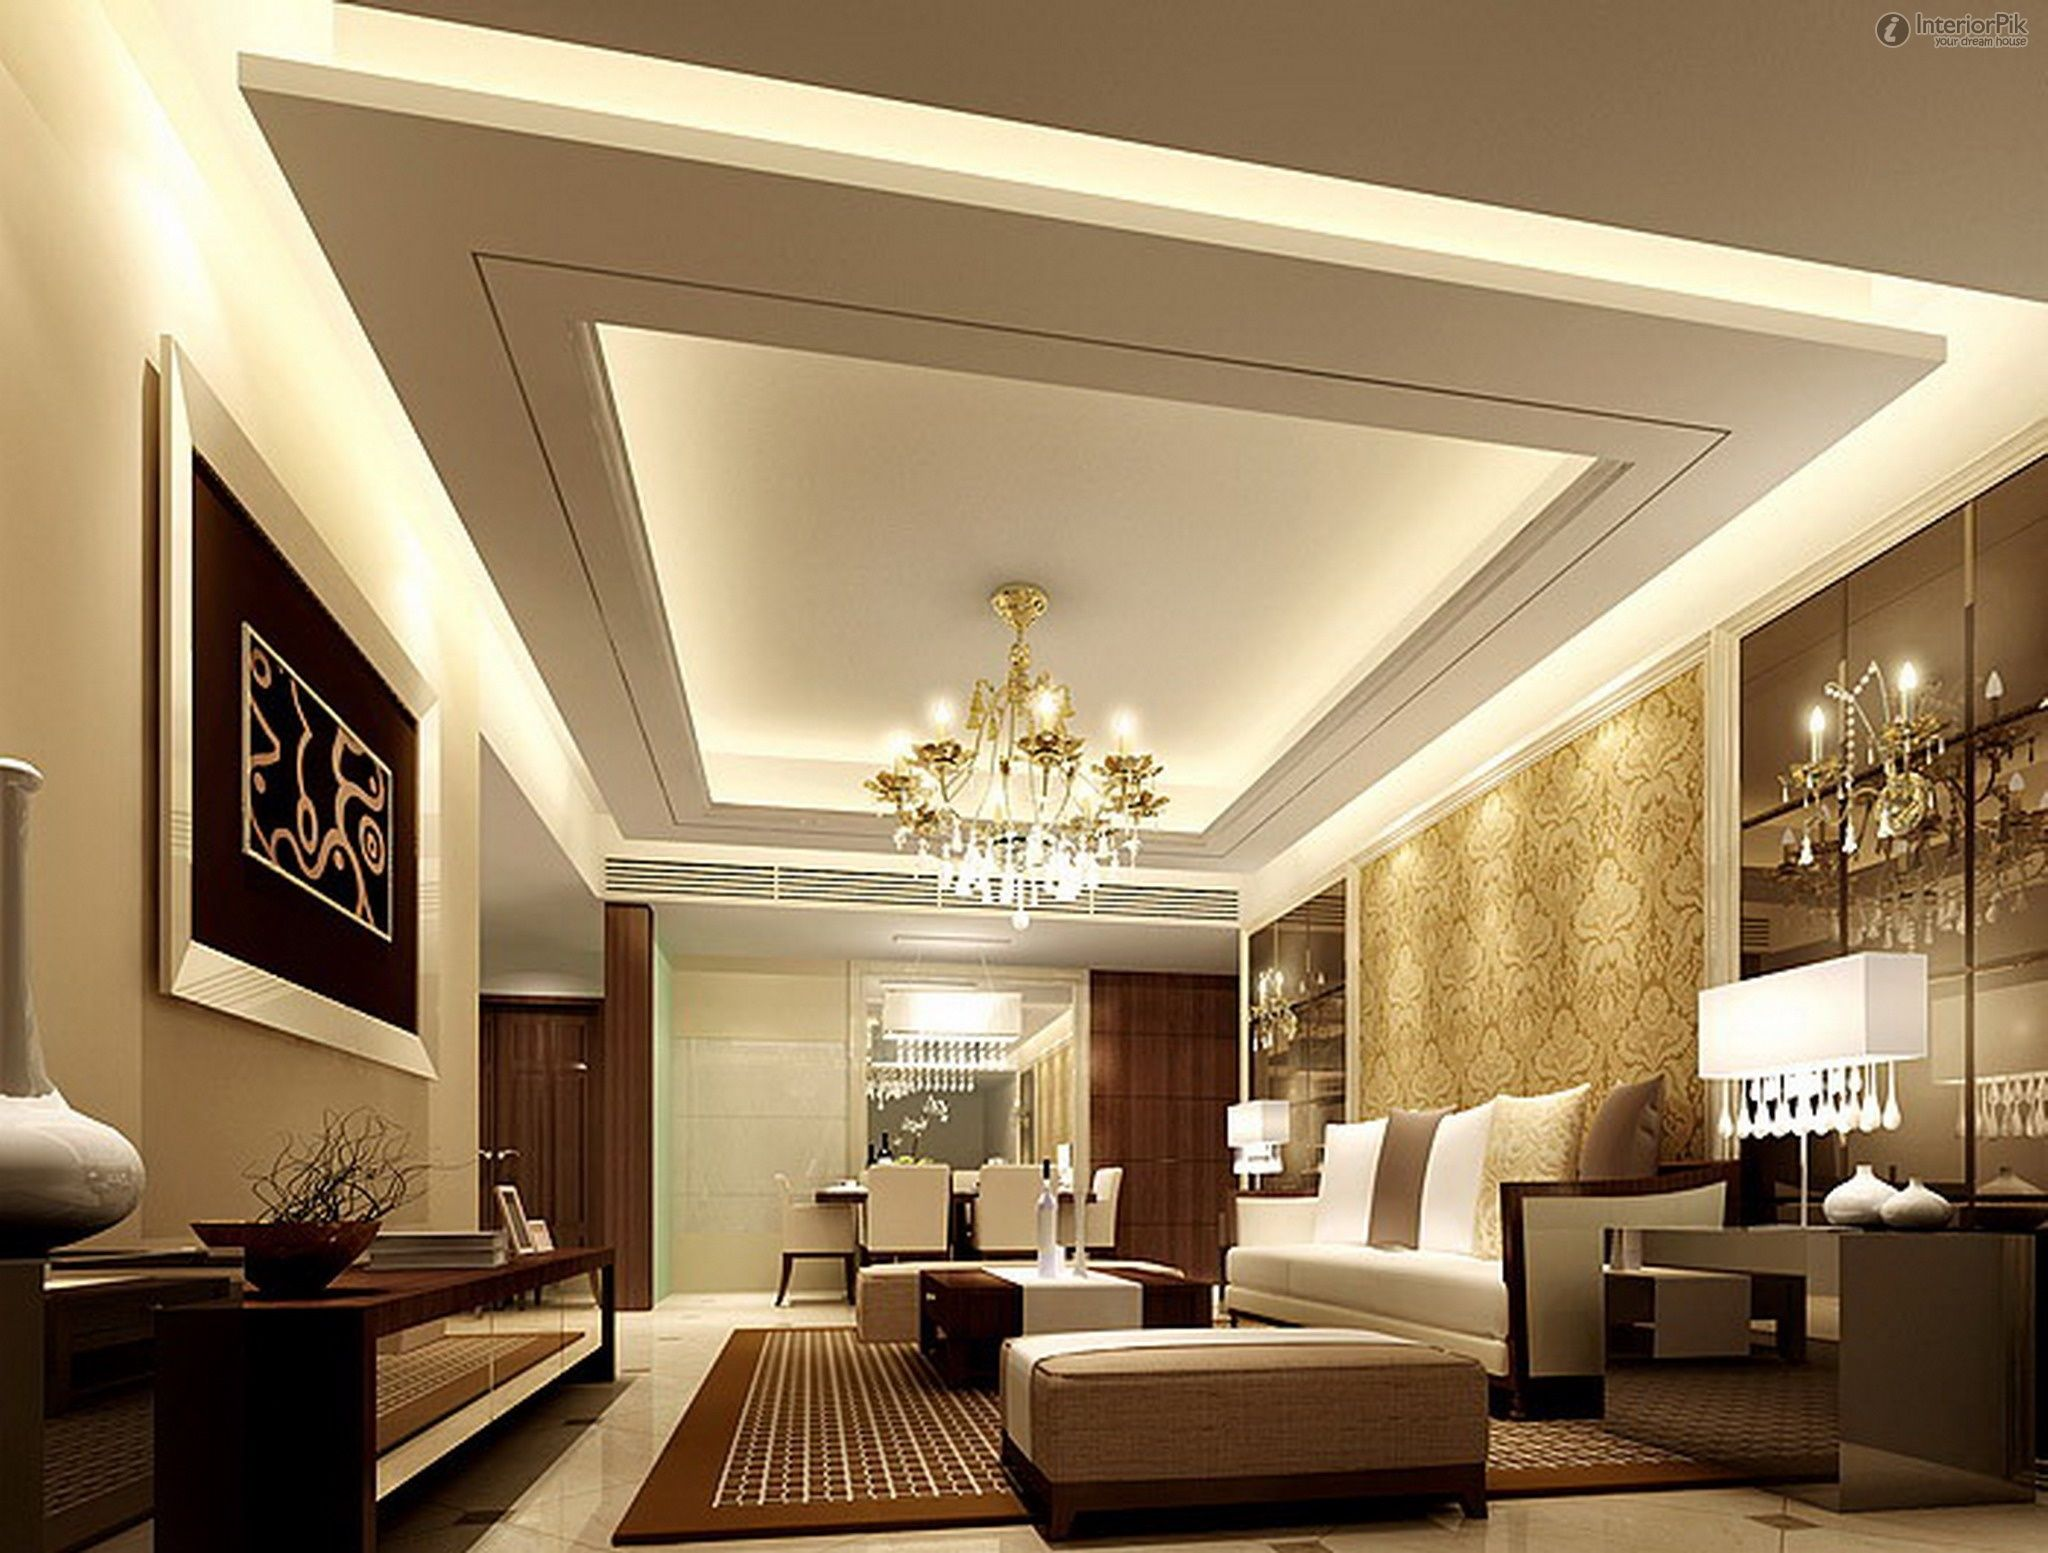 Ceiling designs for your living room deckchen for Award winning house designs in india